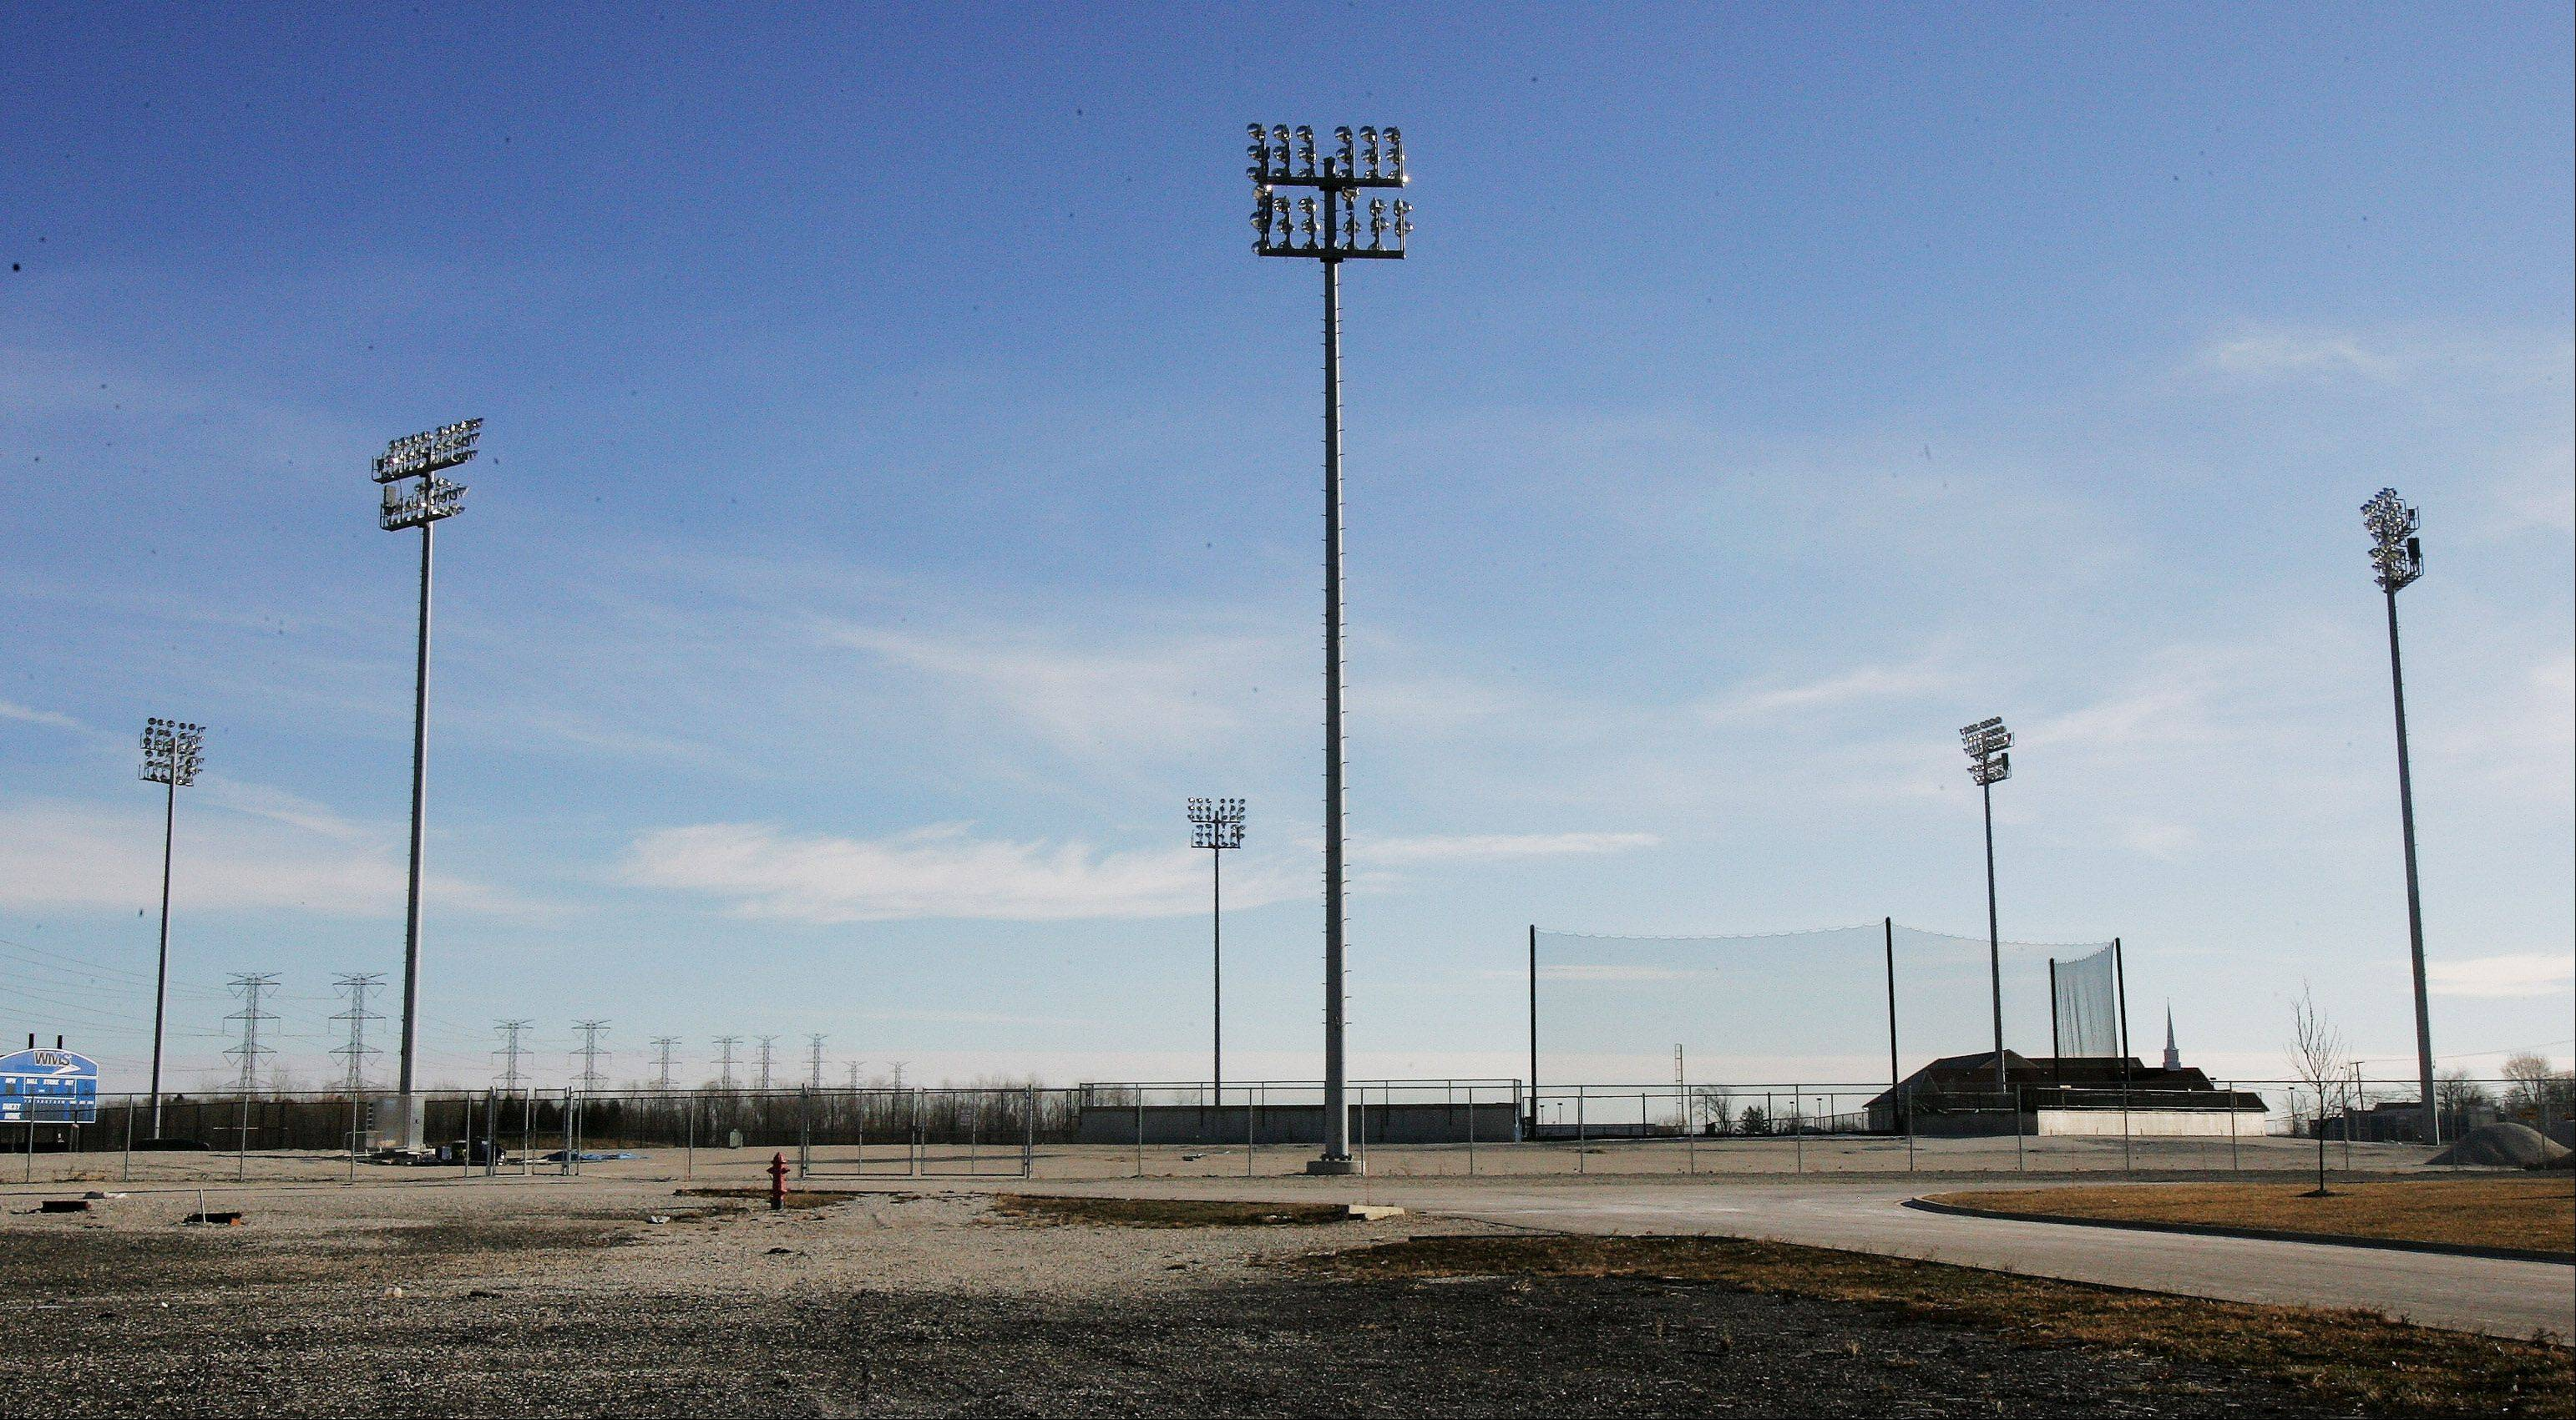 Although a temporary stadium for the Lake County Fielders independent baseball team in Zion was gone, lights and a backstop remained at the site Tuesday. The work cost state taxpayers $1.3 million.